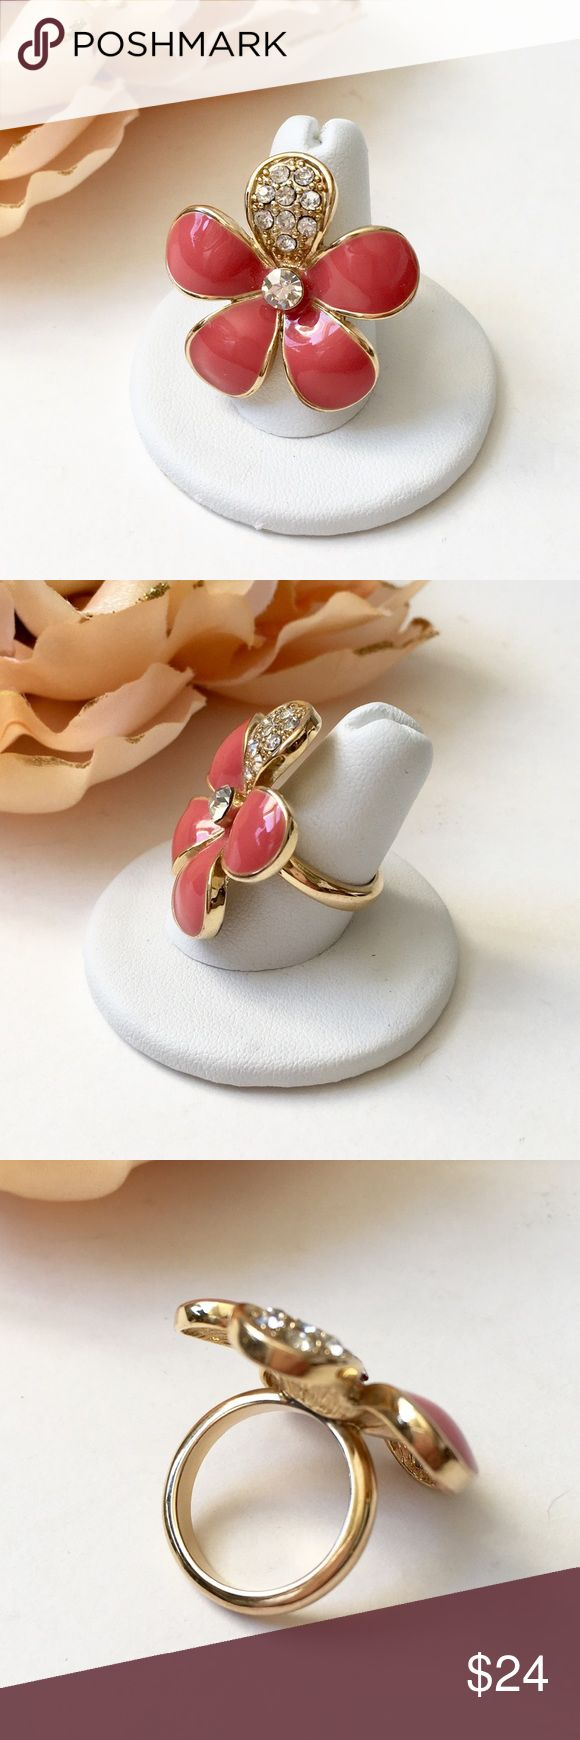 Enamel Flower Ring With One Petal of Crystals❤️ High quality costume piece. No makers mark. Weight: 0.5 oz. Color: milky deep coral. Polished gold-tone. Size: 6 1/2. Light wear...very good condition. Believe purchased at Macy's. Jewelry Rings